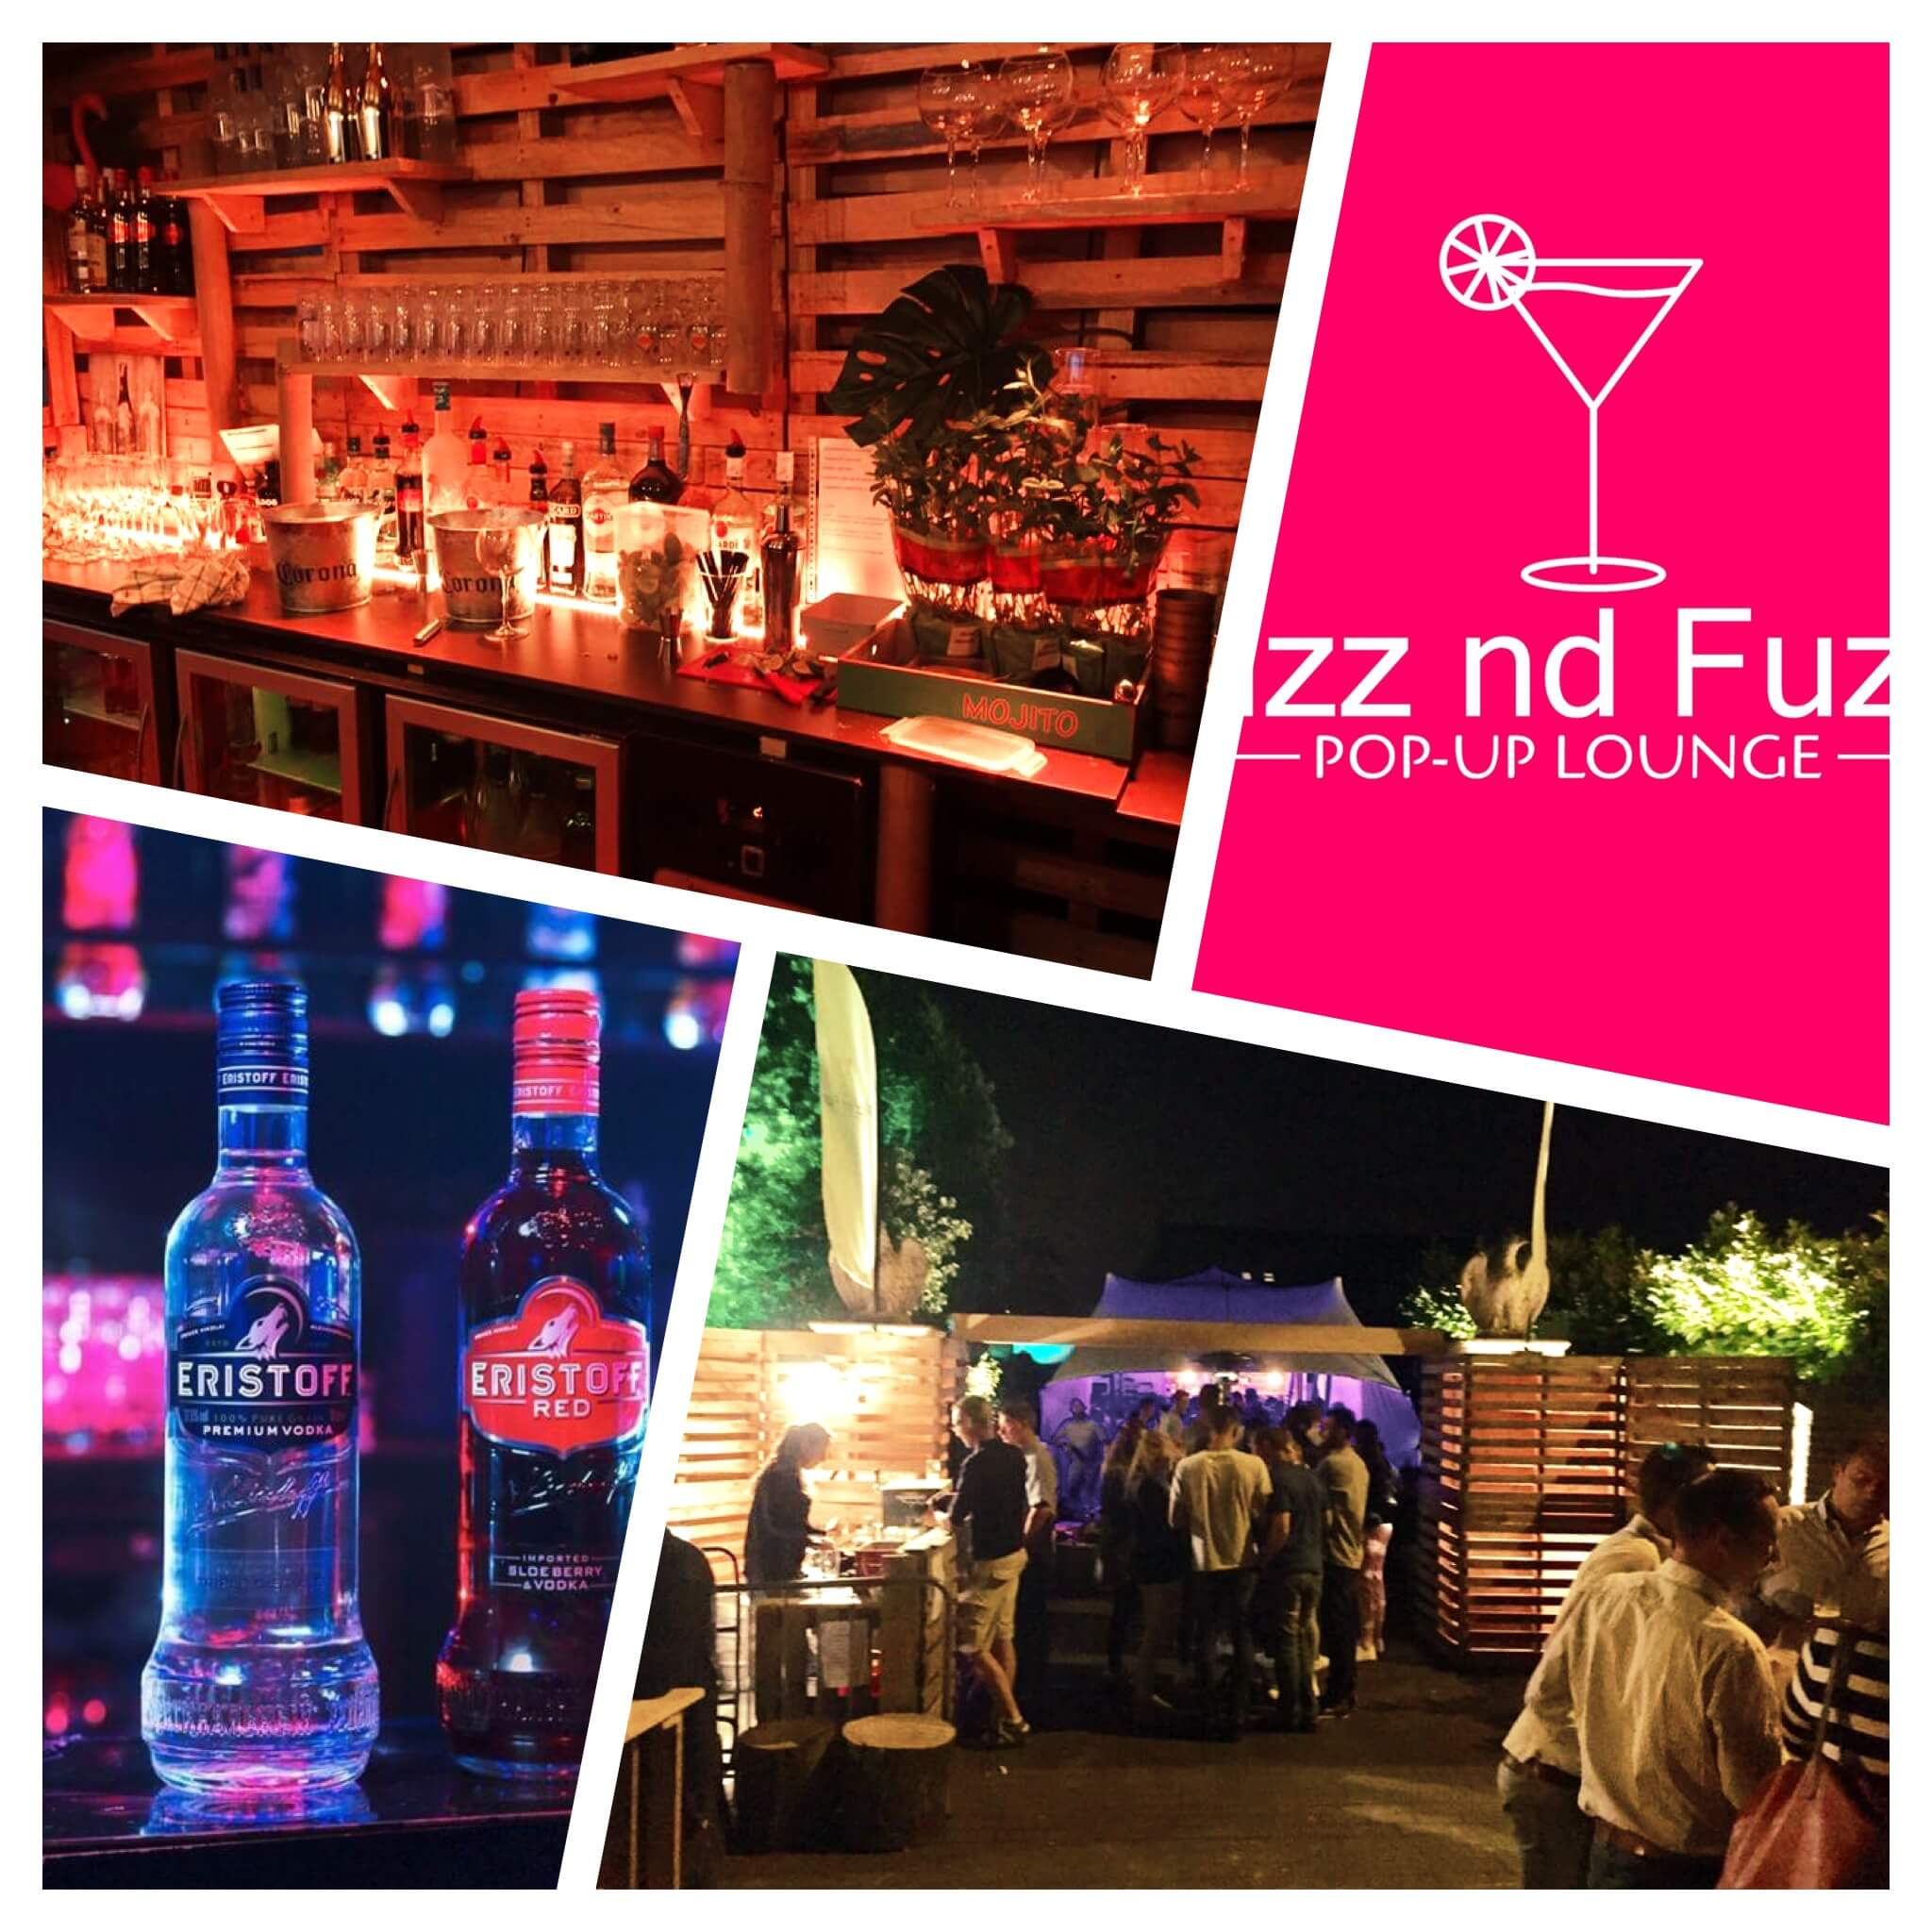 Sfeerbeeld Fizz nd Fuzz pop-up lounge